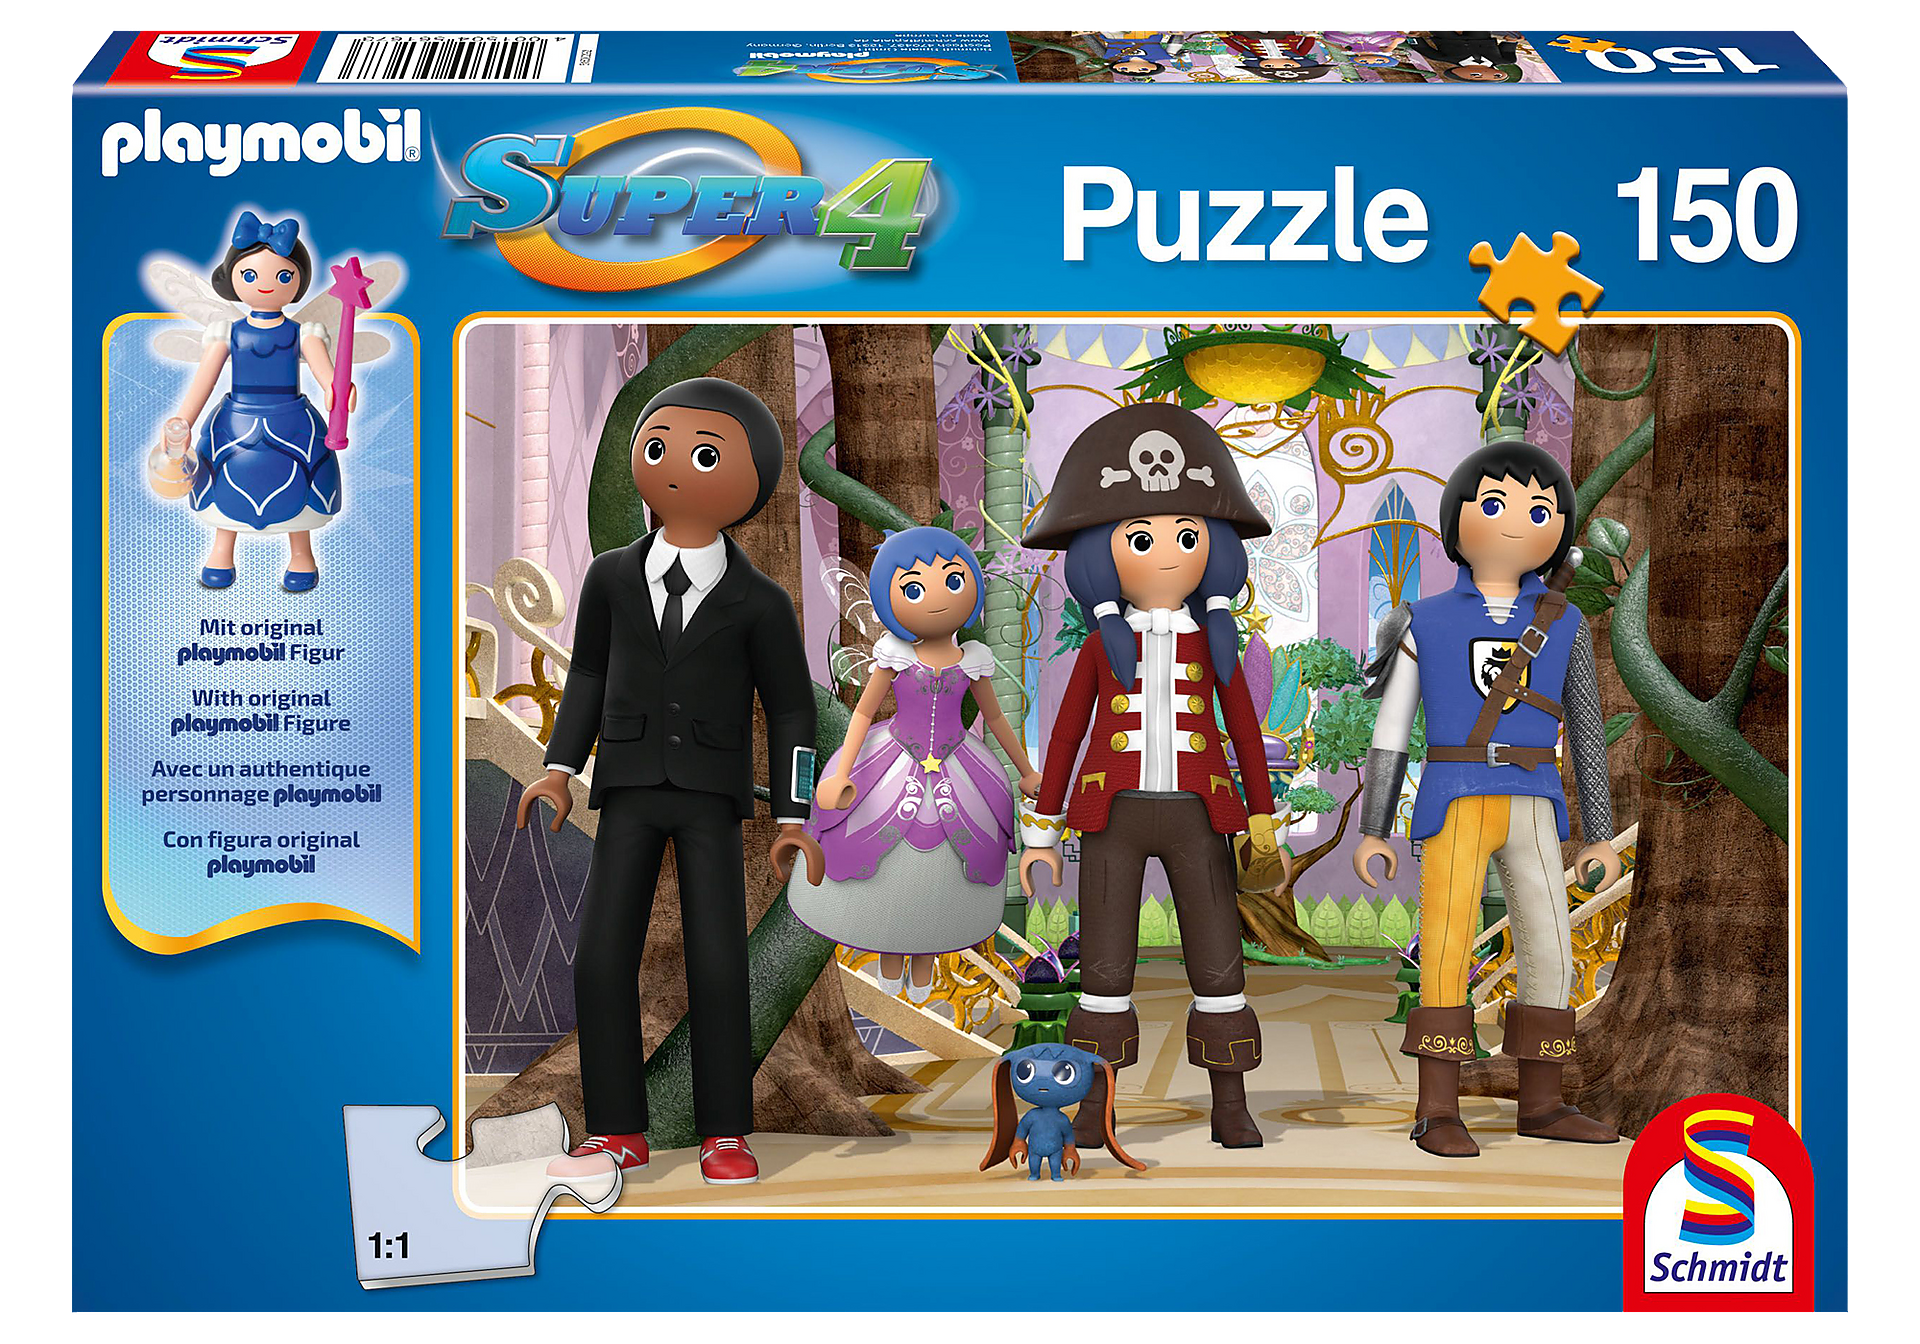 http://media.playmobil.com/i/playmobil/80708_product_detail/Puzzle Super4 - Enchanted Island